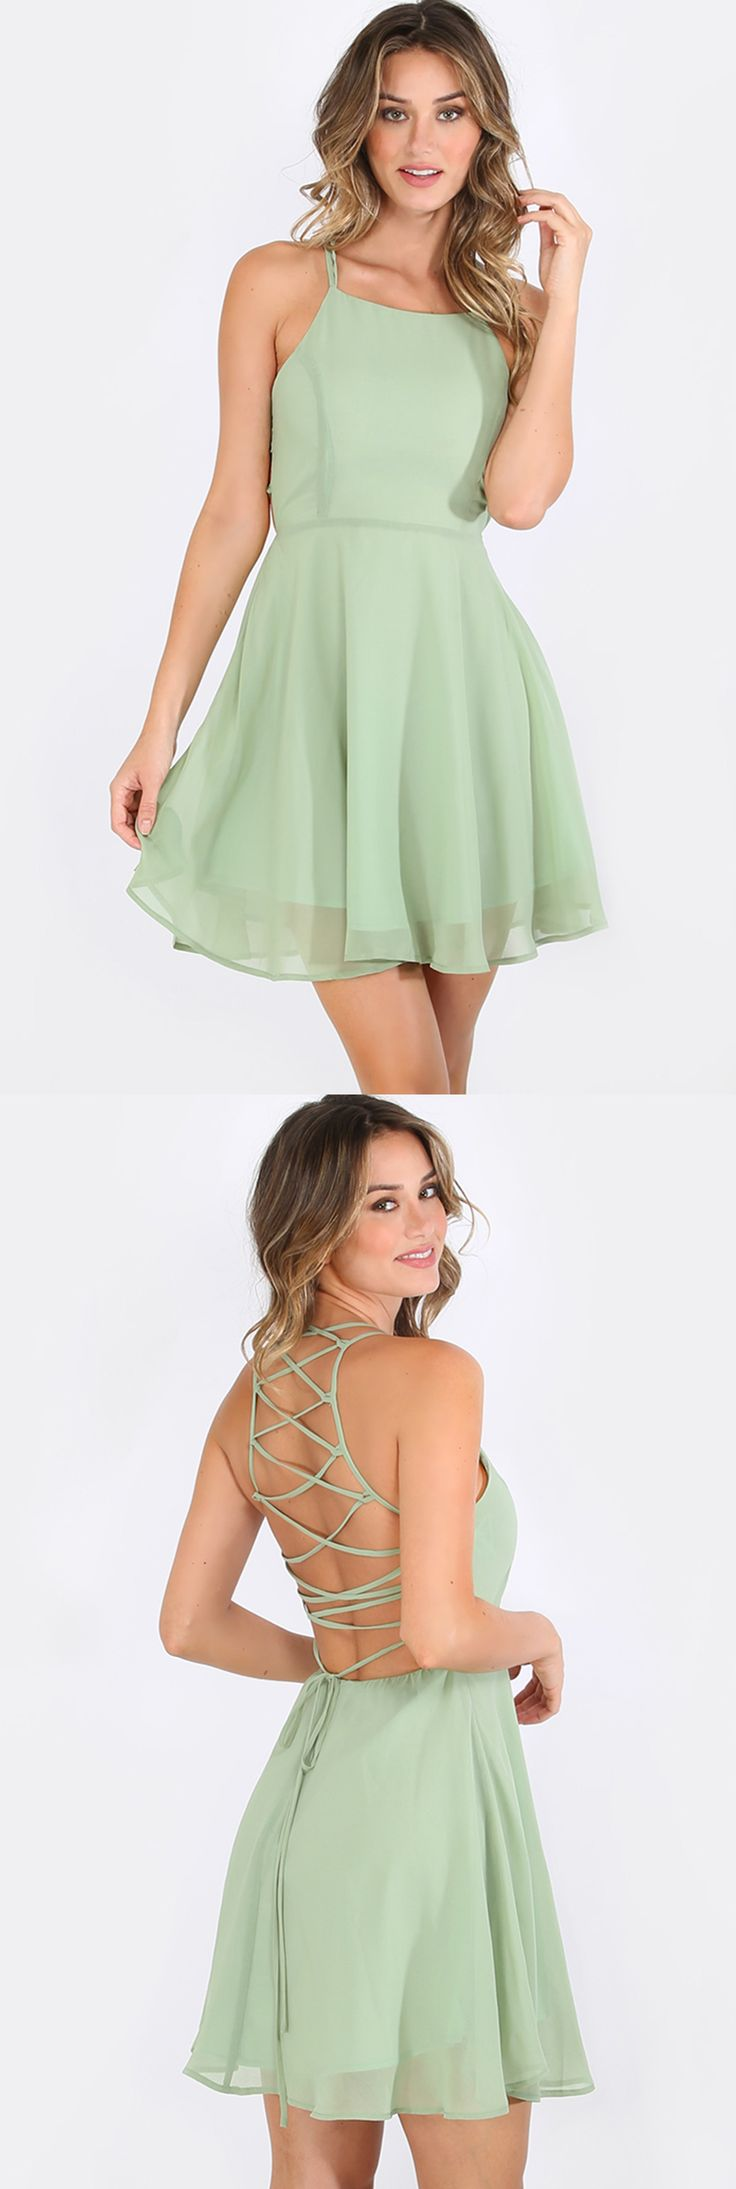 best fashionhomecoming dresses images on pinterest formal